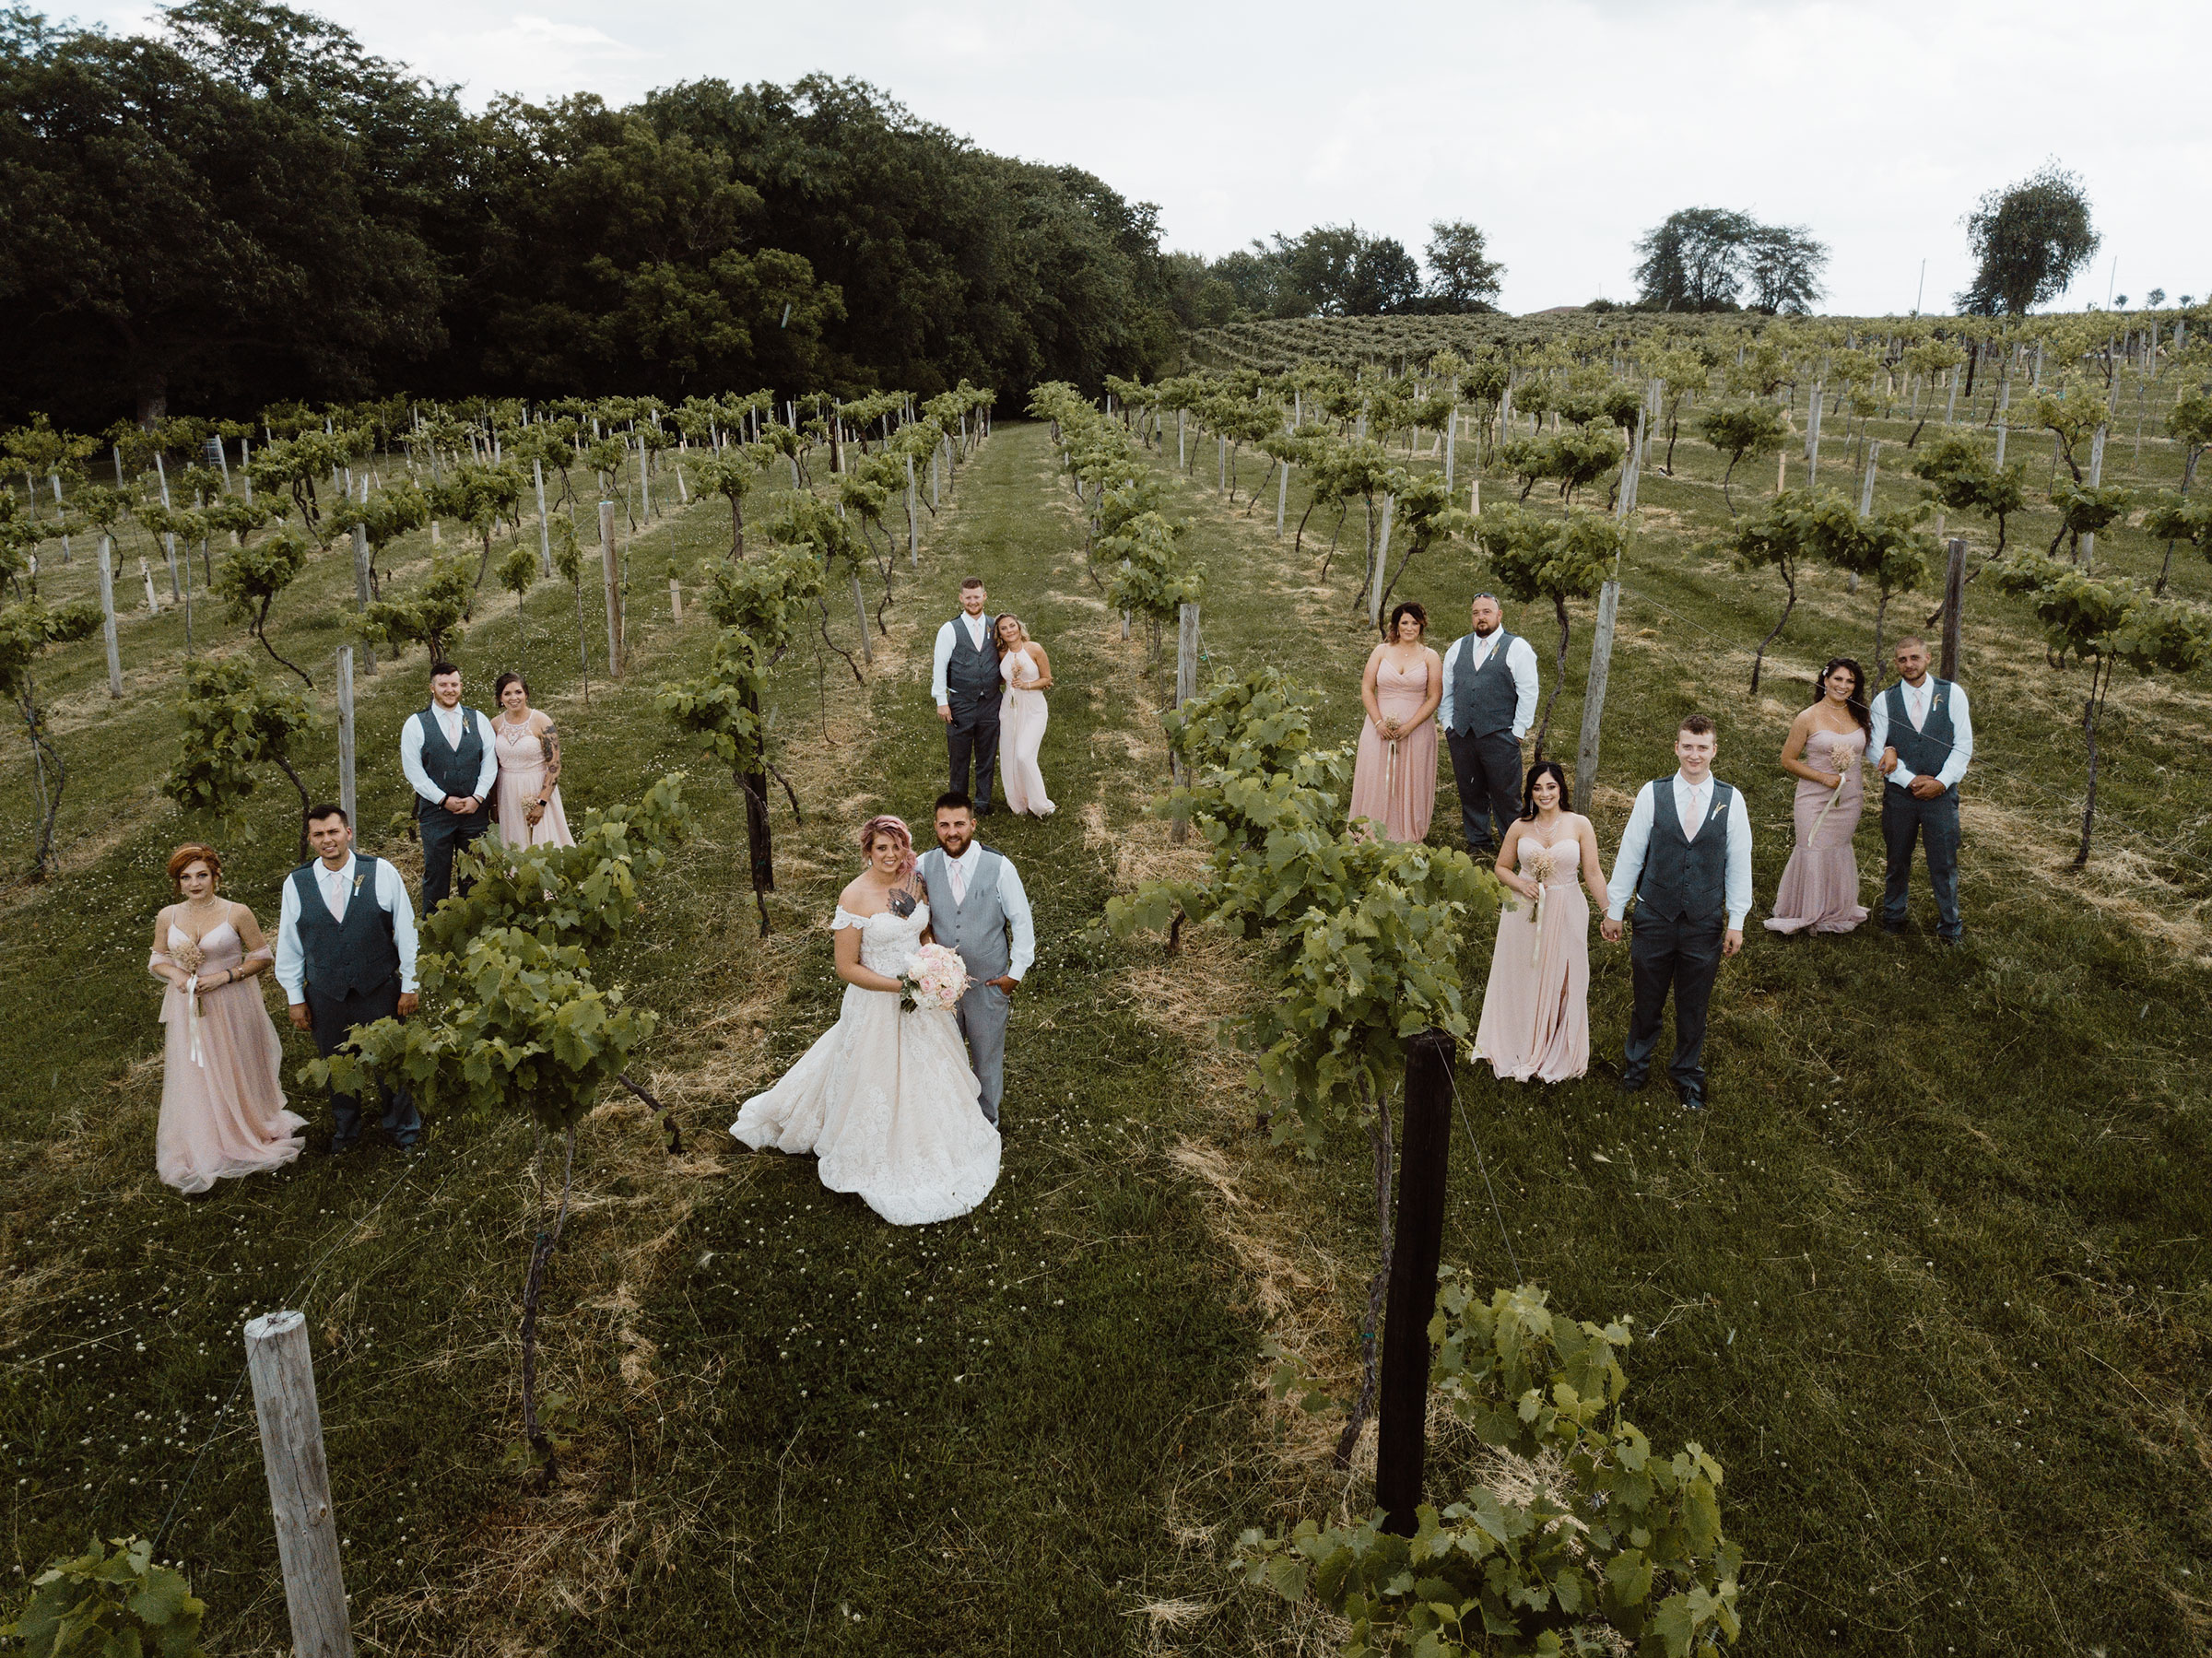 wedding-party-standing-in-vineyard-drone-shot-summerset-winery-raelyn-ramey-photography.jpg